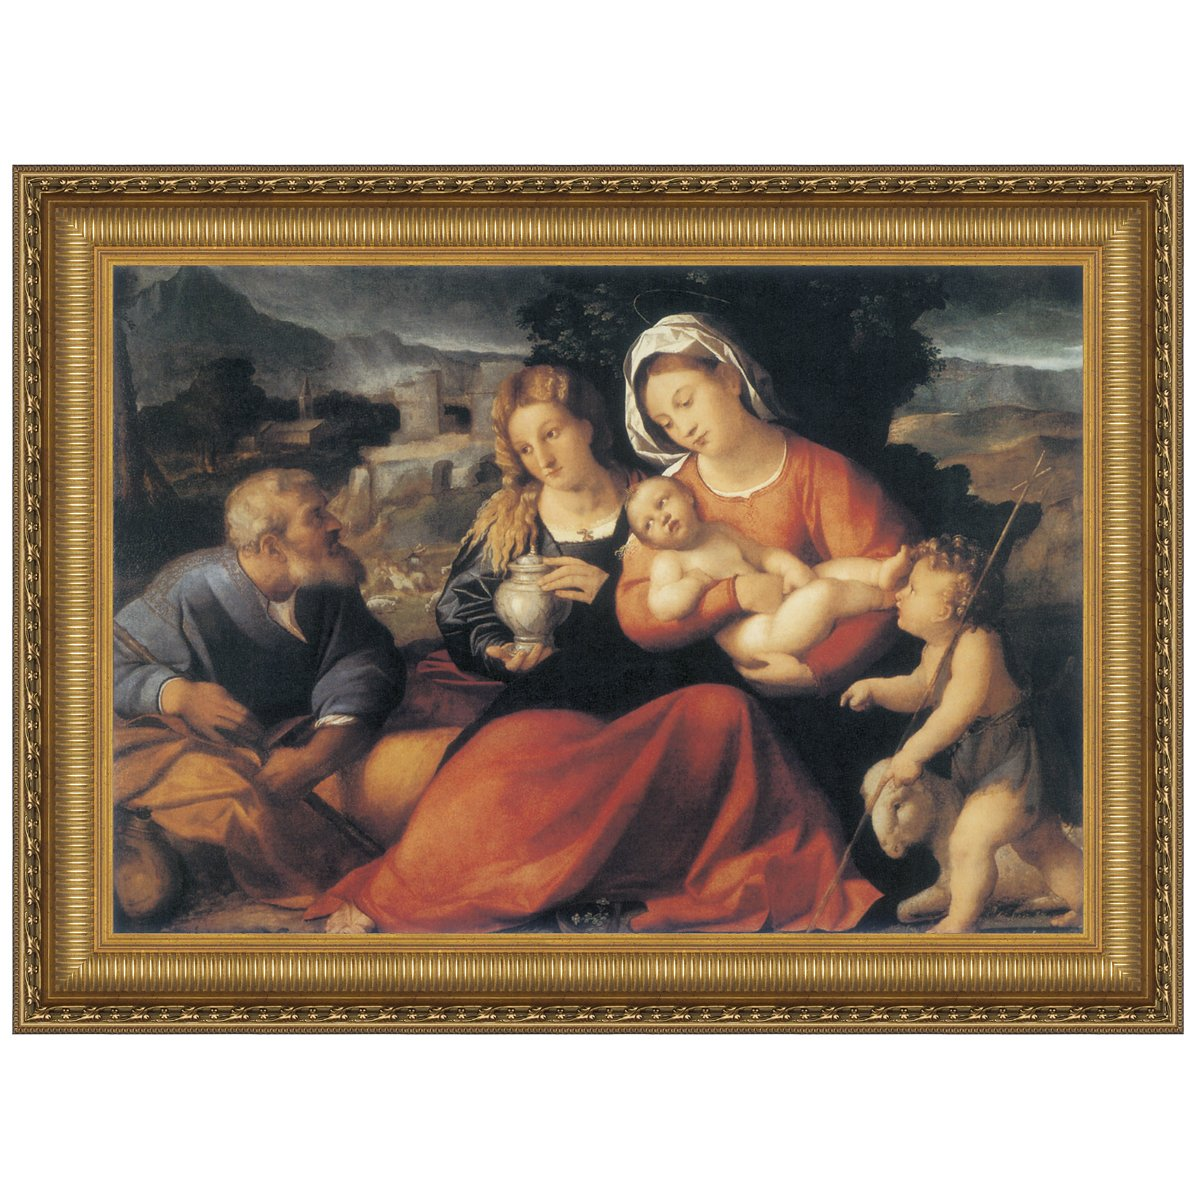 Design Toscano Holy Family with the Young Saint John and Mary Magdalene, 1490: Canvas Replica Painting, Large by Design Toscano